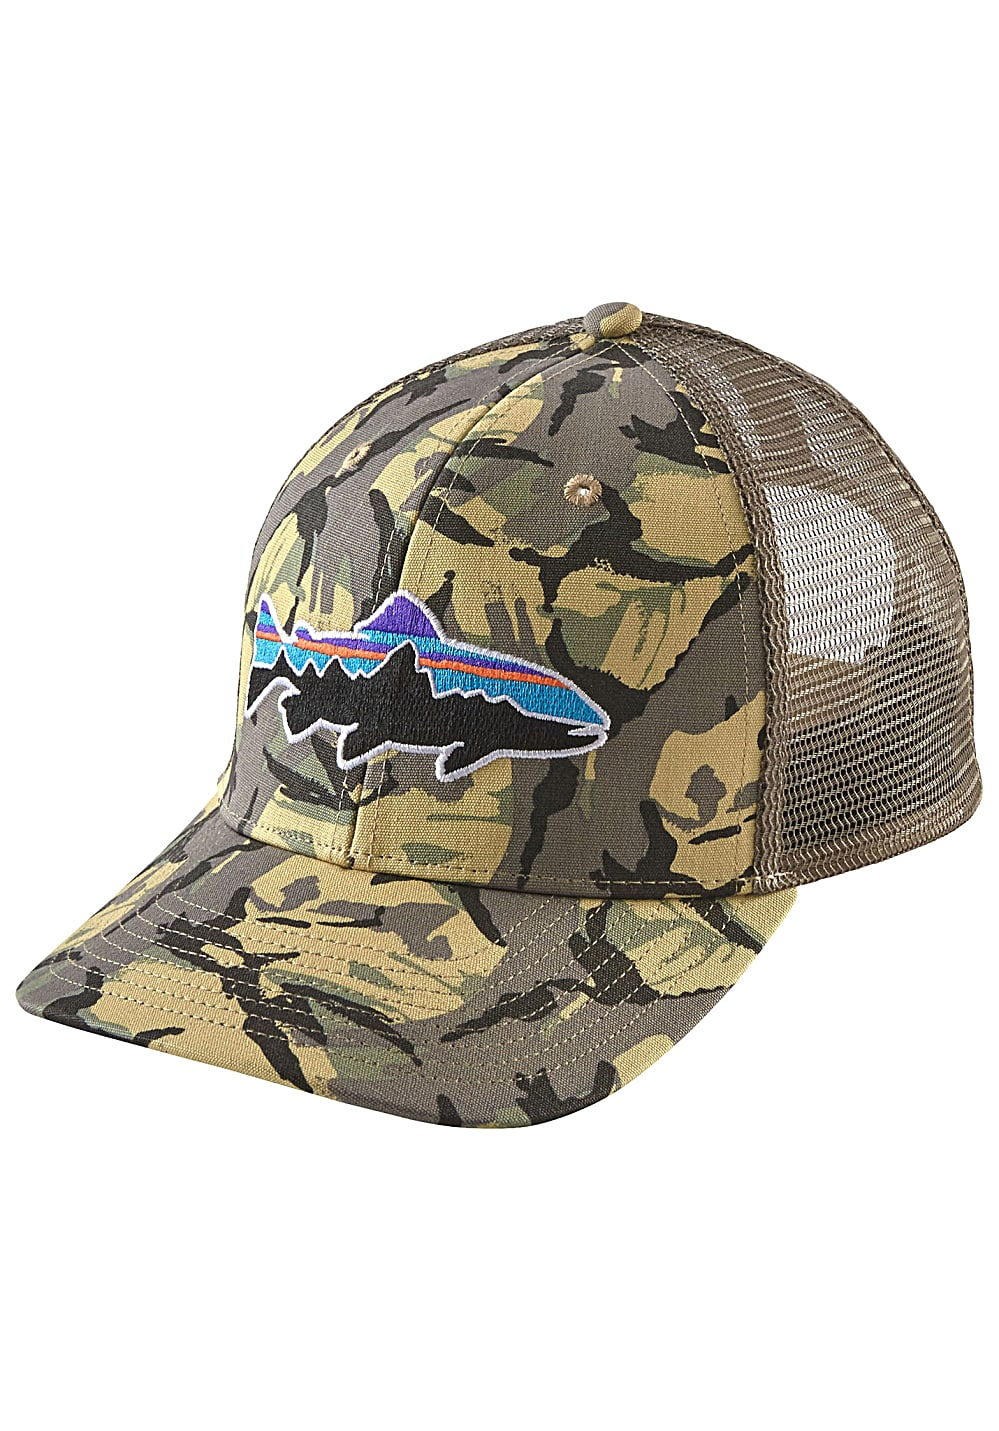 Patagonia Fitz Roy Trout Trucker Cap - Camouflage